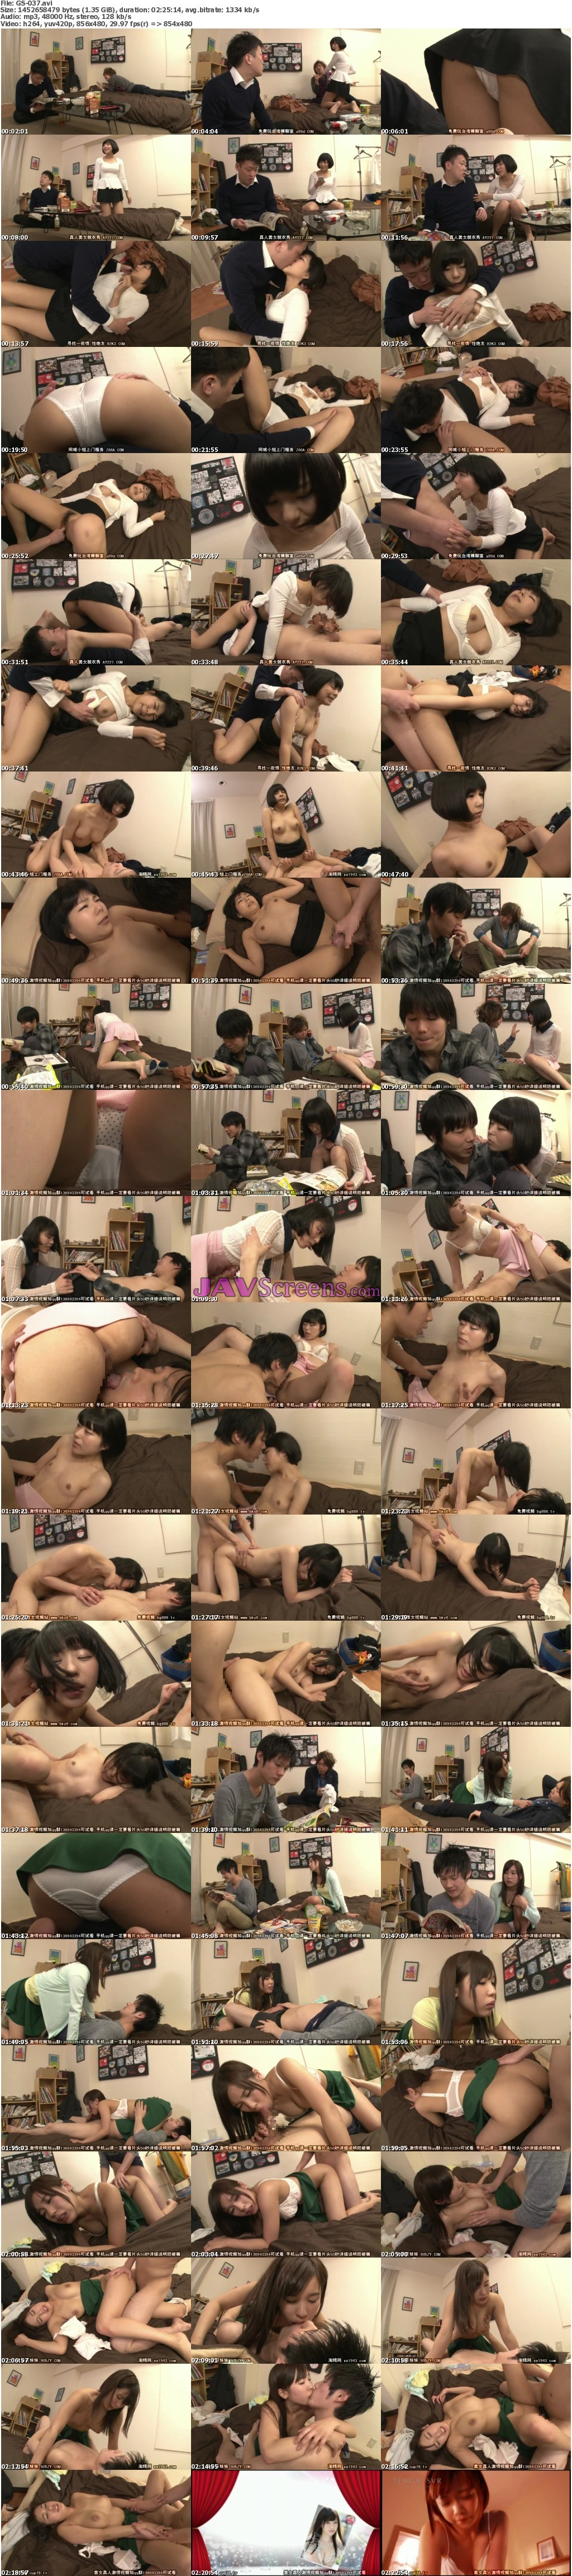 GS-037.jpg - JAV Screenshot